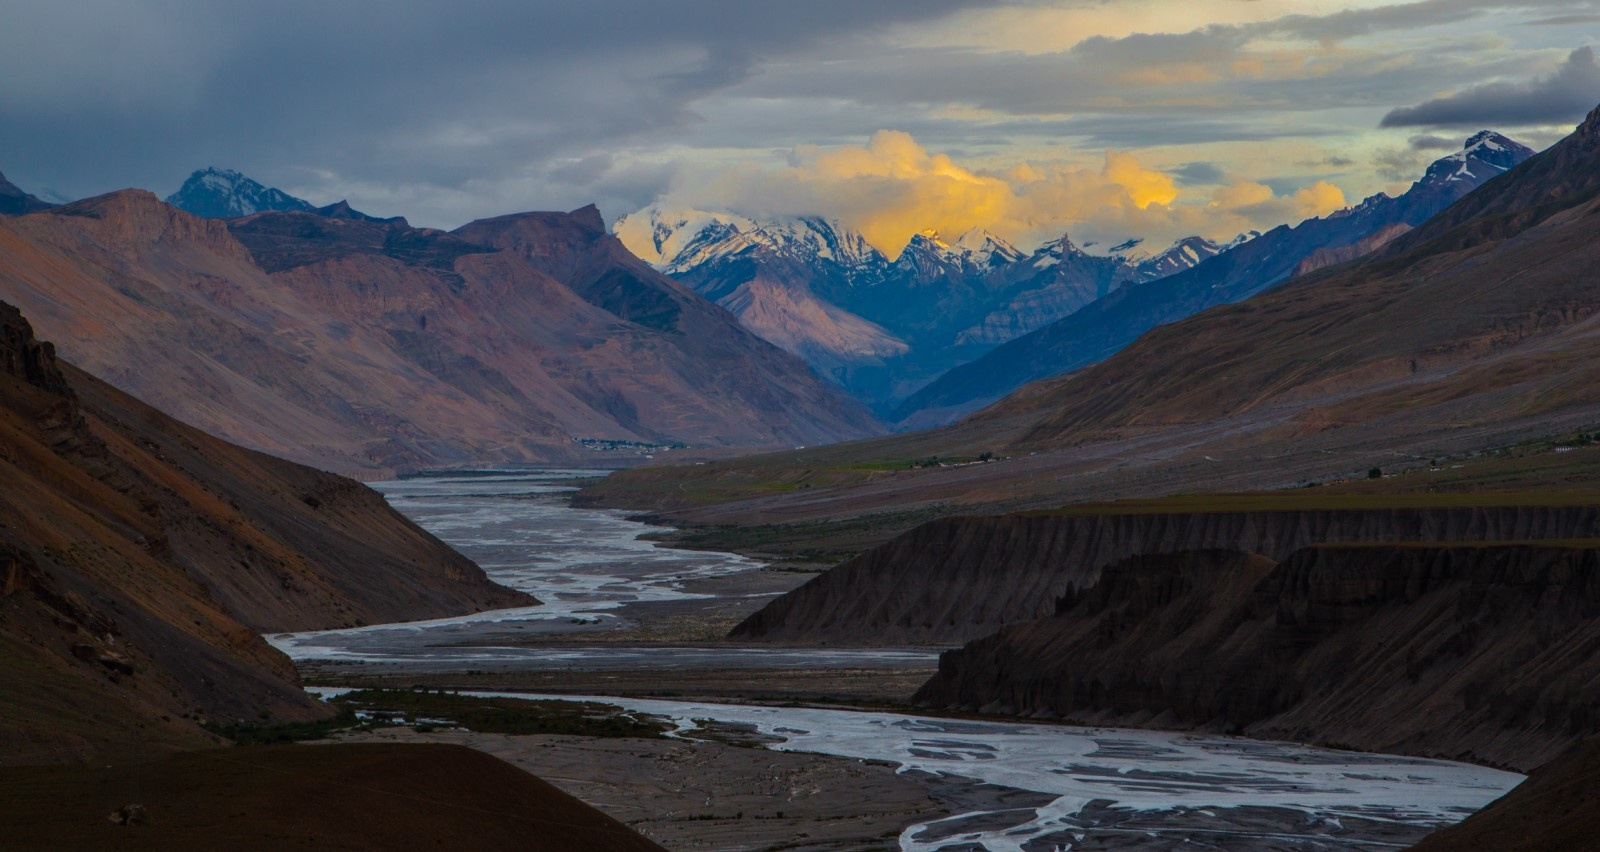 S for Spiti by Dhruva Suresh